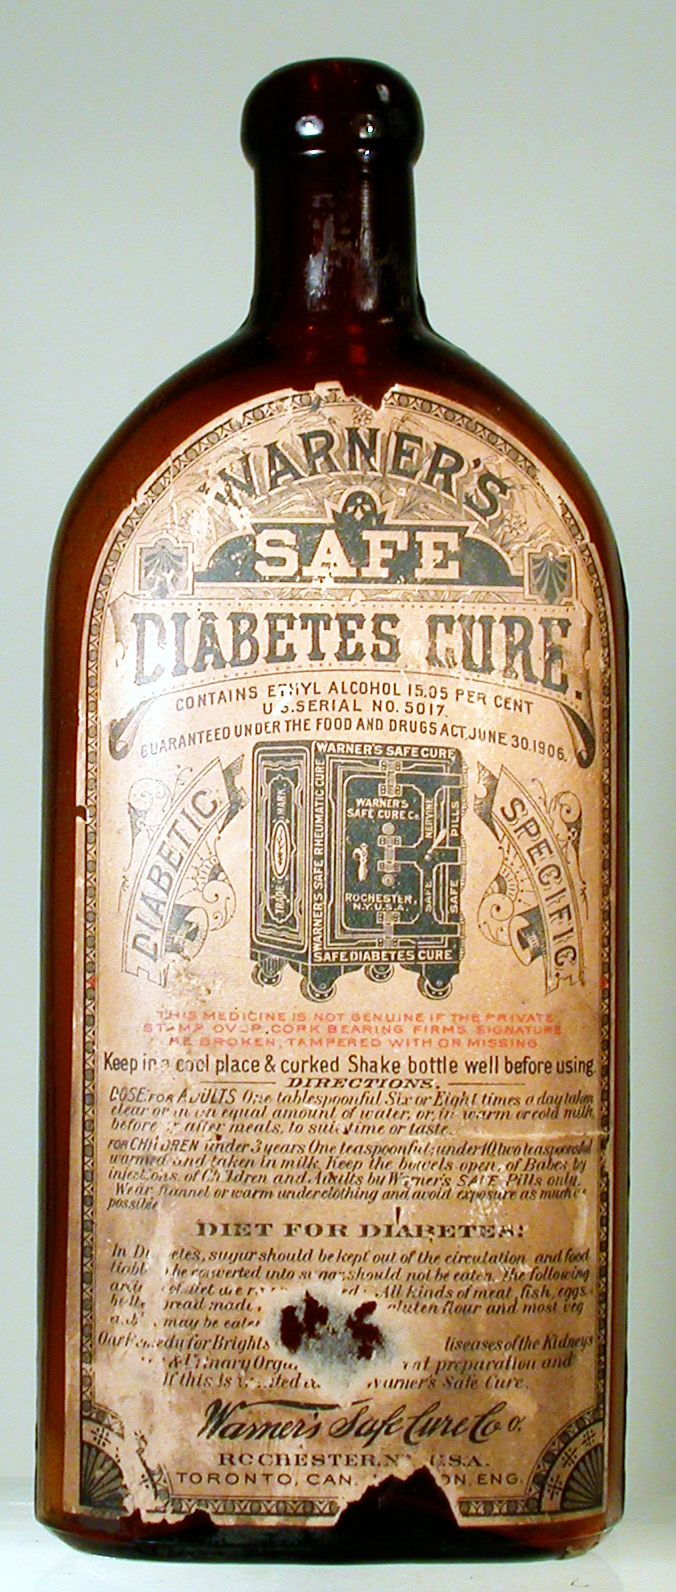 Warner's Safe Diabetes Cure, 1906-1908. From americanhistory.si.edu.